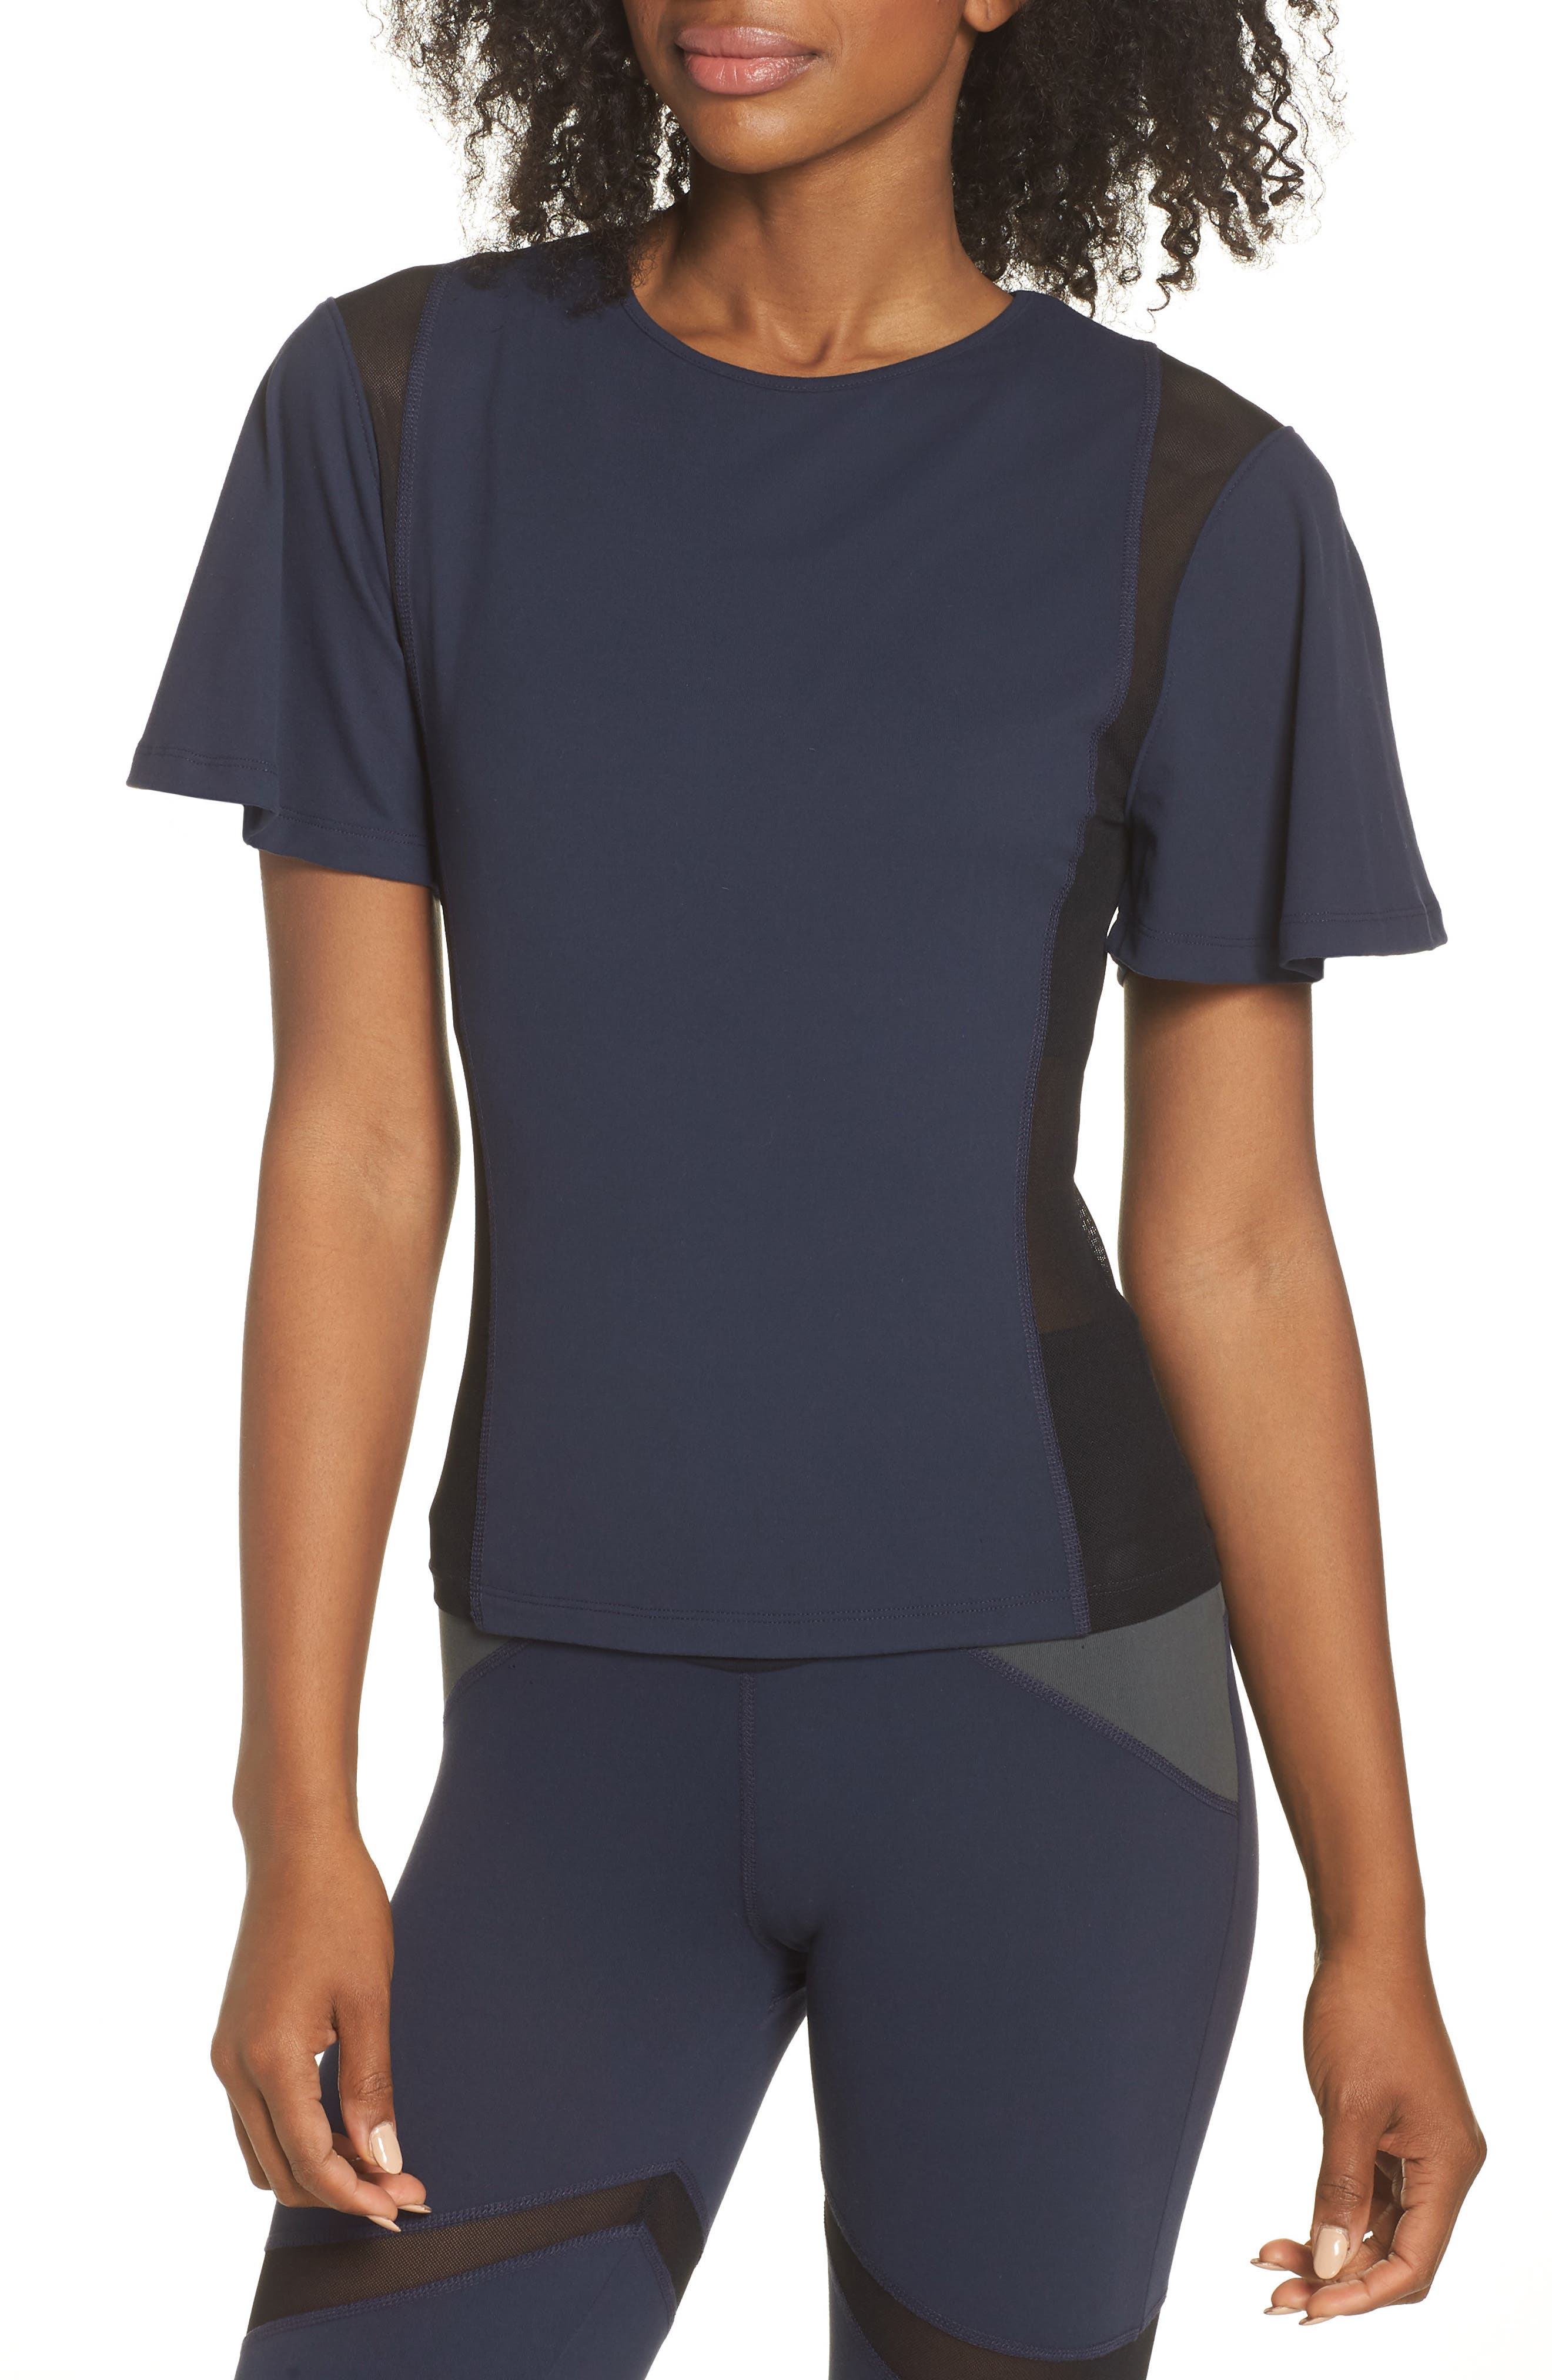 BoomBoom Athletica Wing Sleeve Tee,                         Main,                         color, NAVY/ BLACK